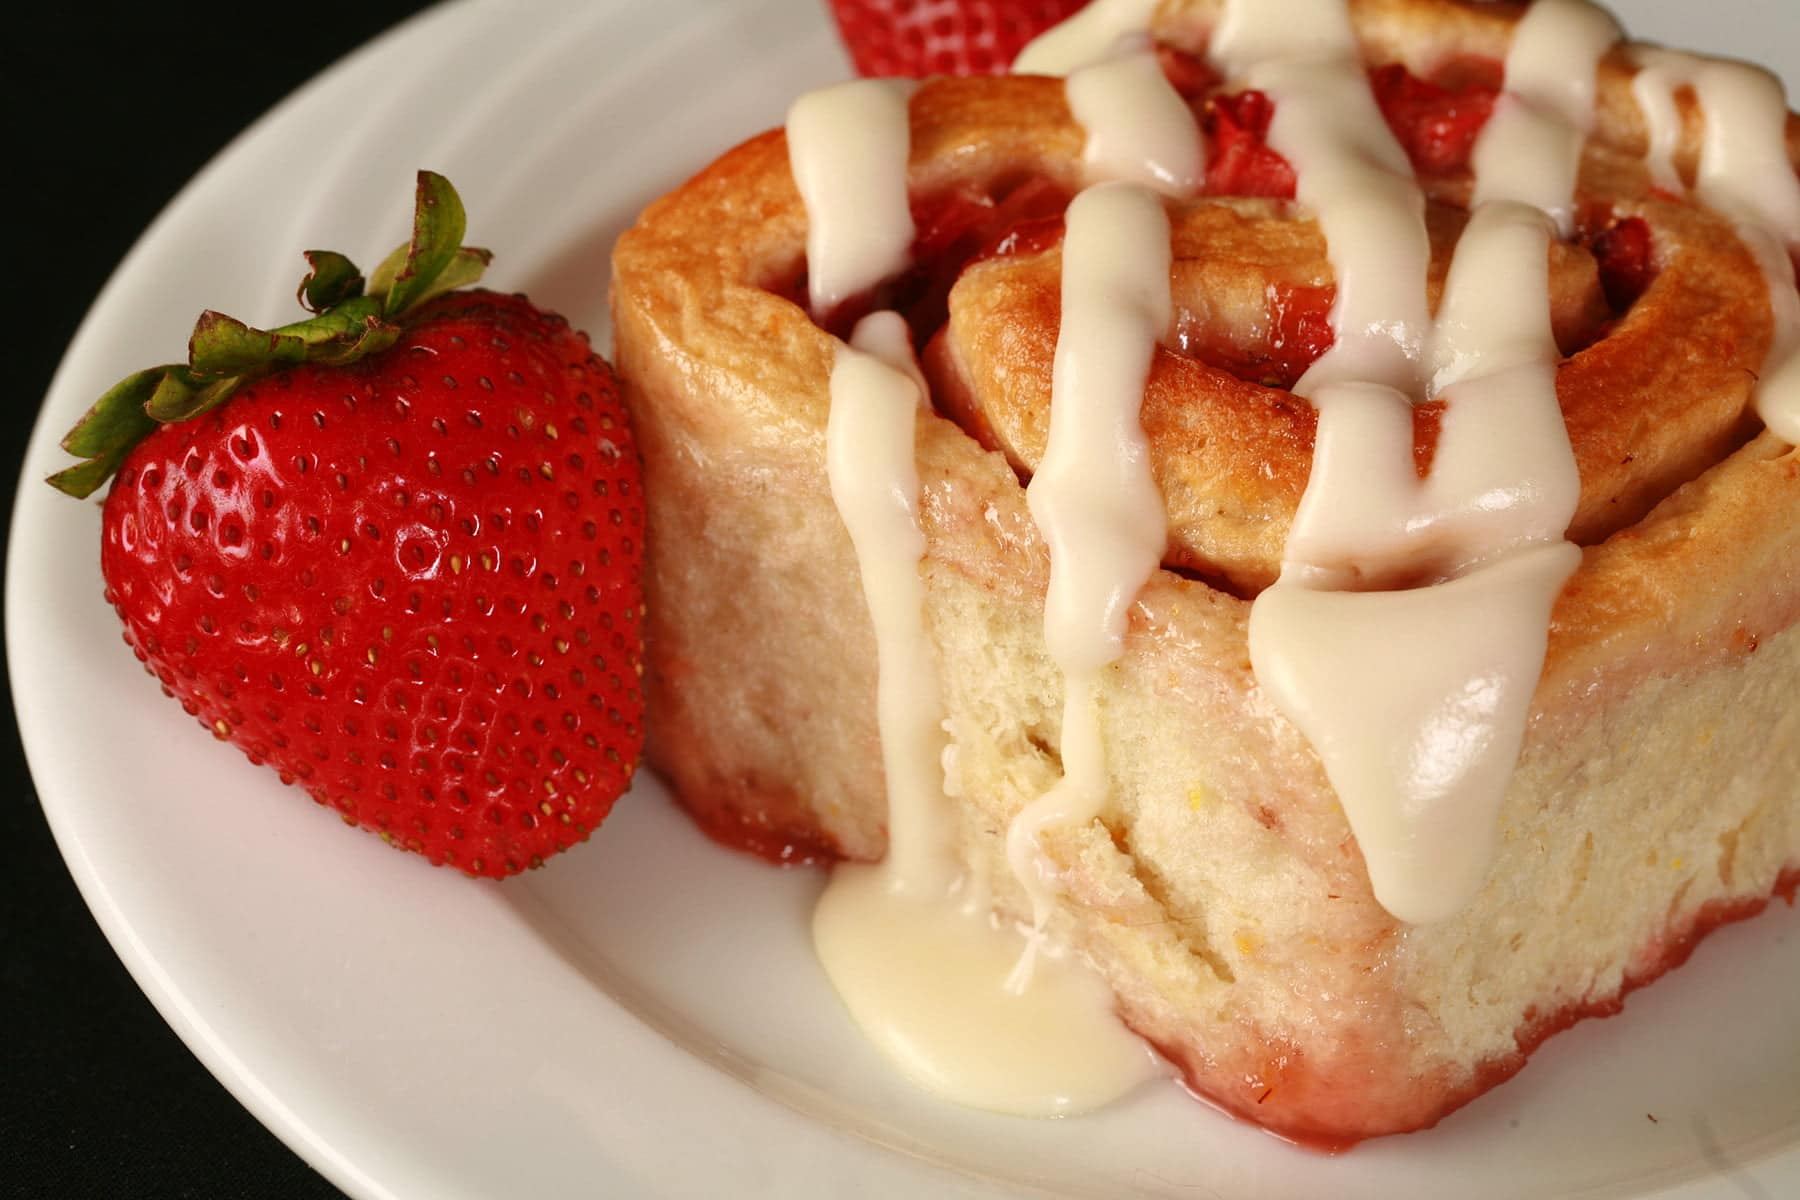 A orange strawberry roll on a white plate, with 2 fresh strawberries next to it